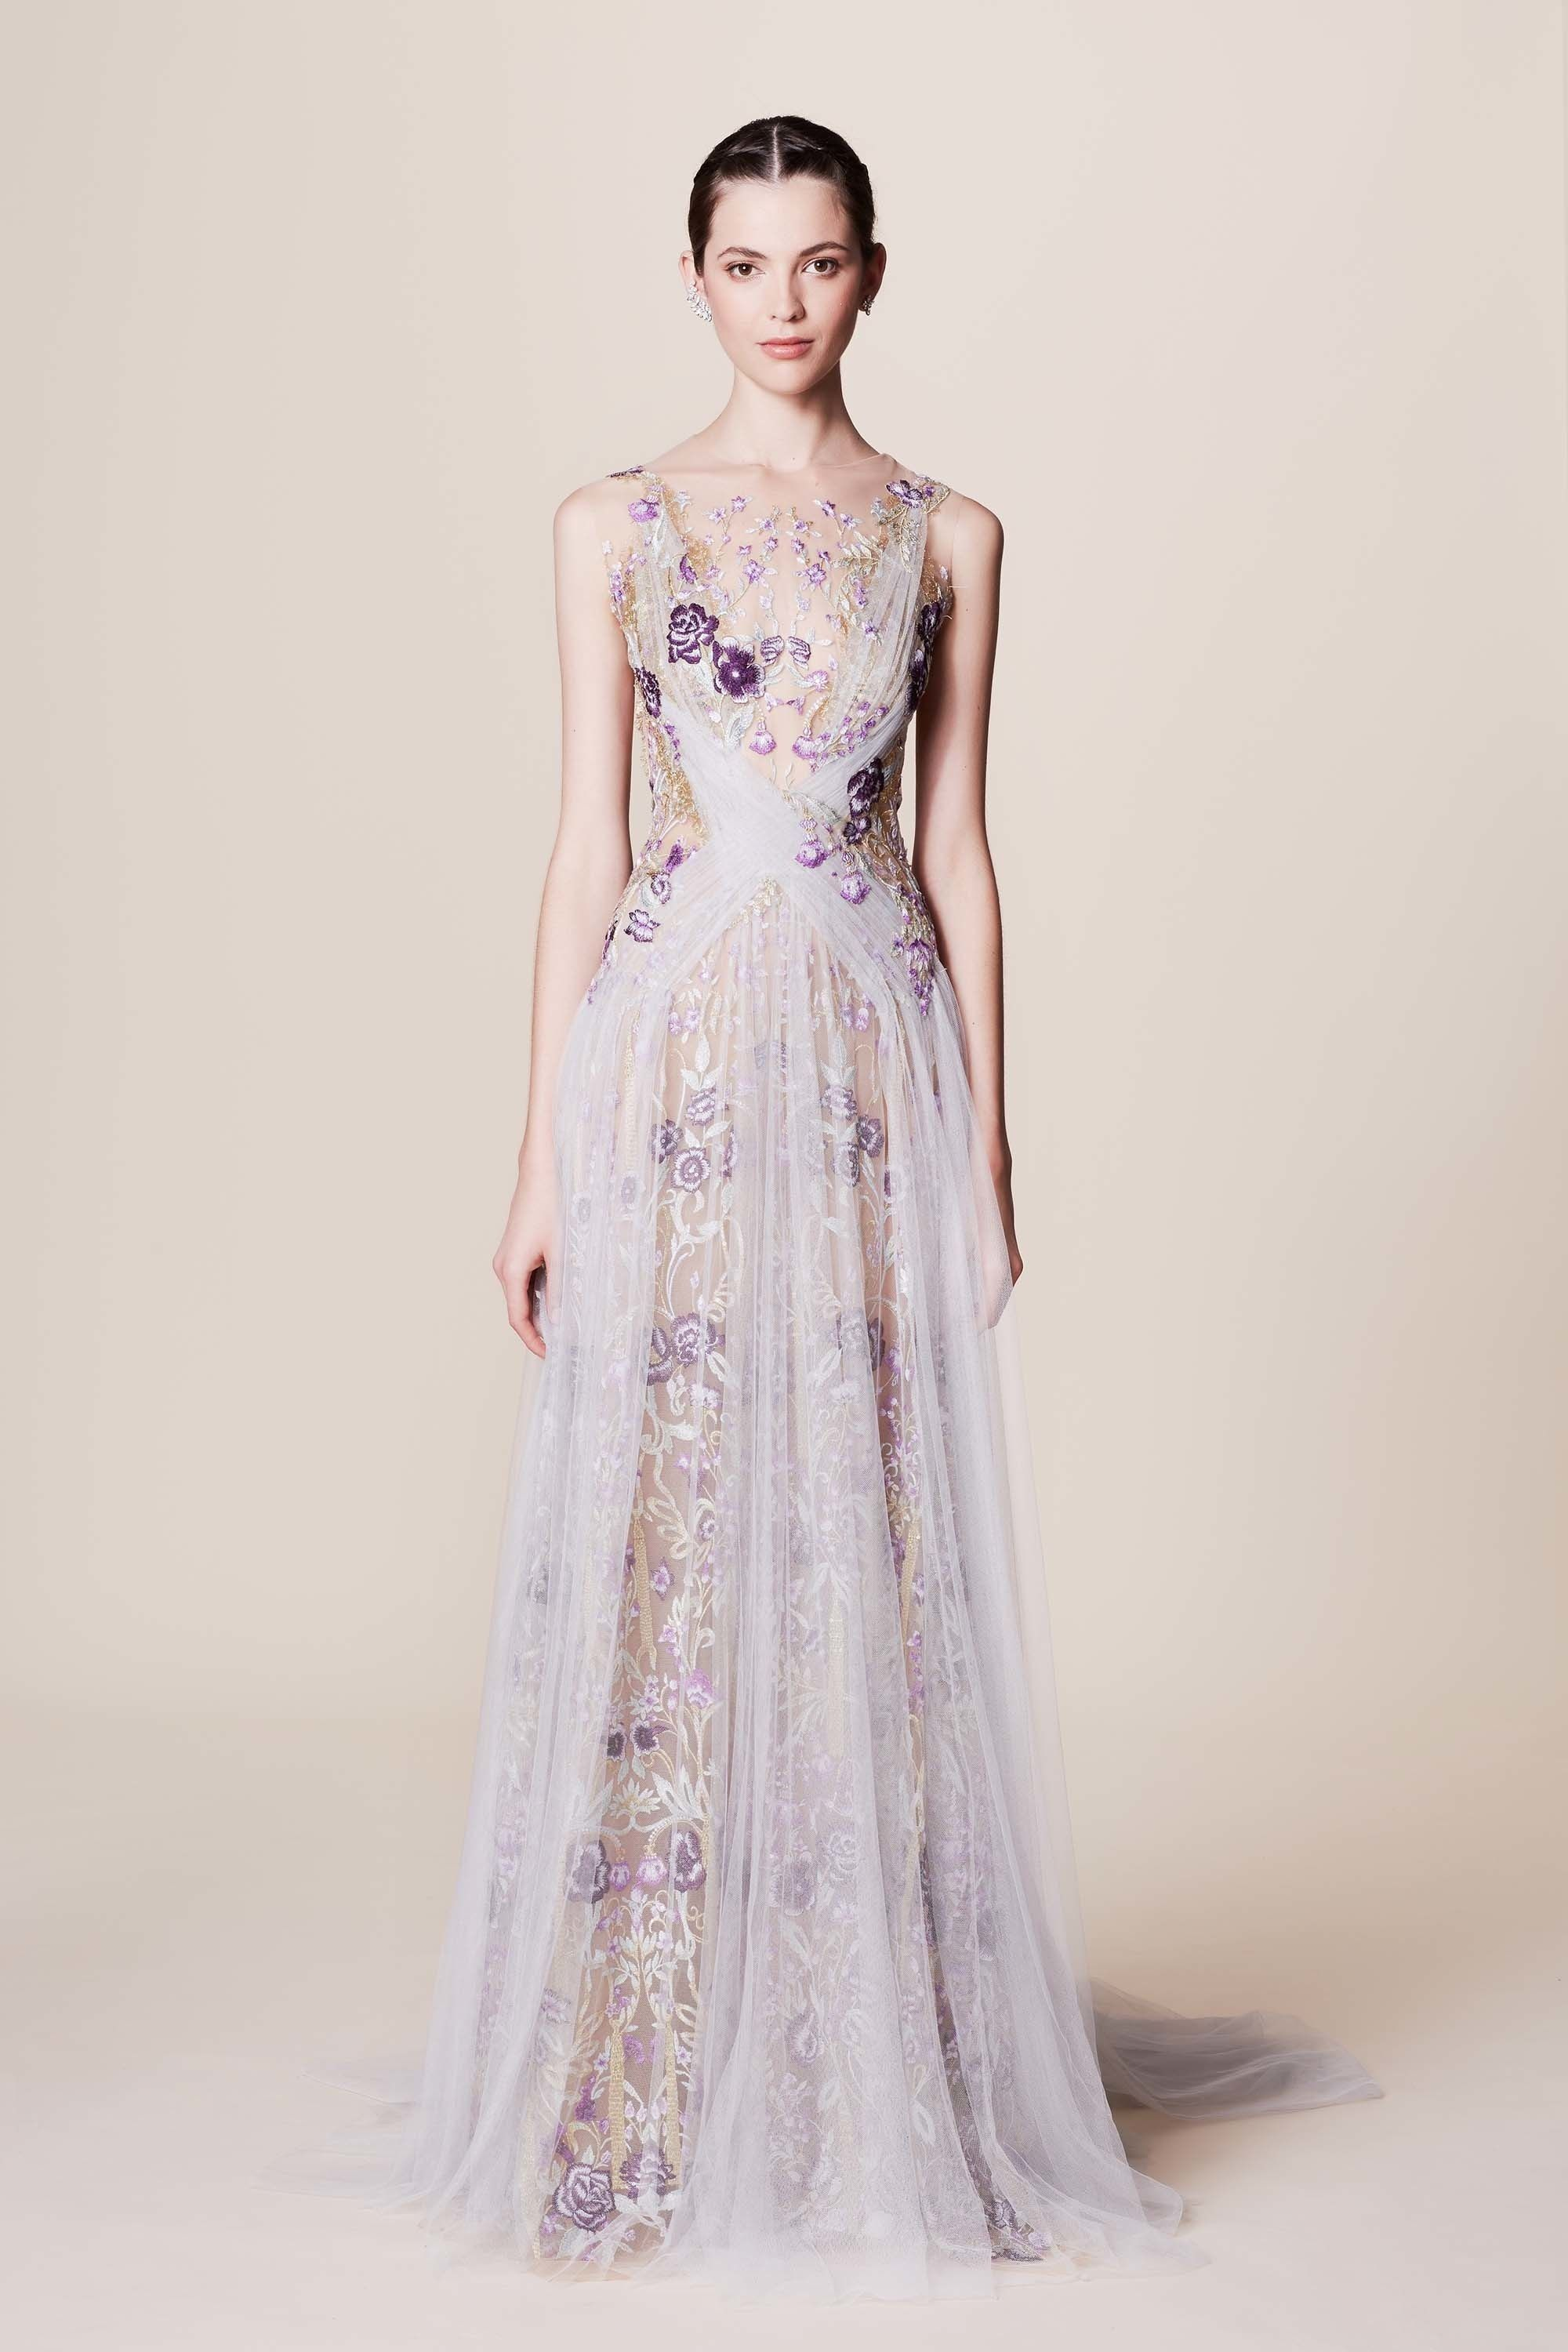 41c23ab81f Marchesa Resort 2017 Fashion Show As with the Marchesa Notte collection,  they booked a white